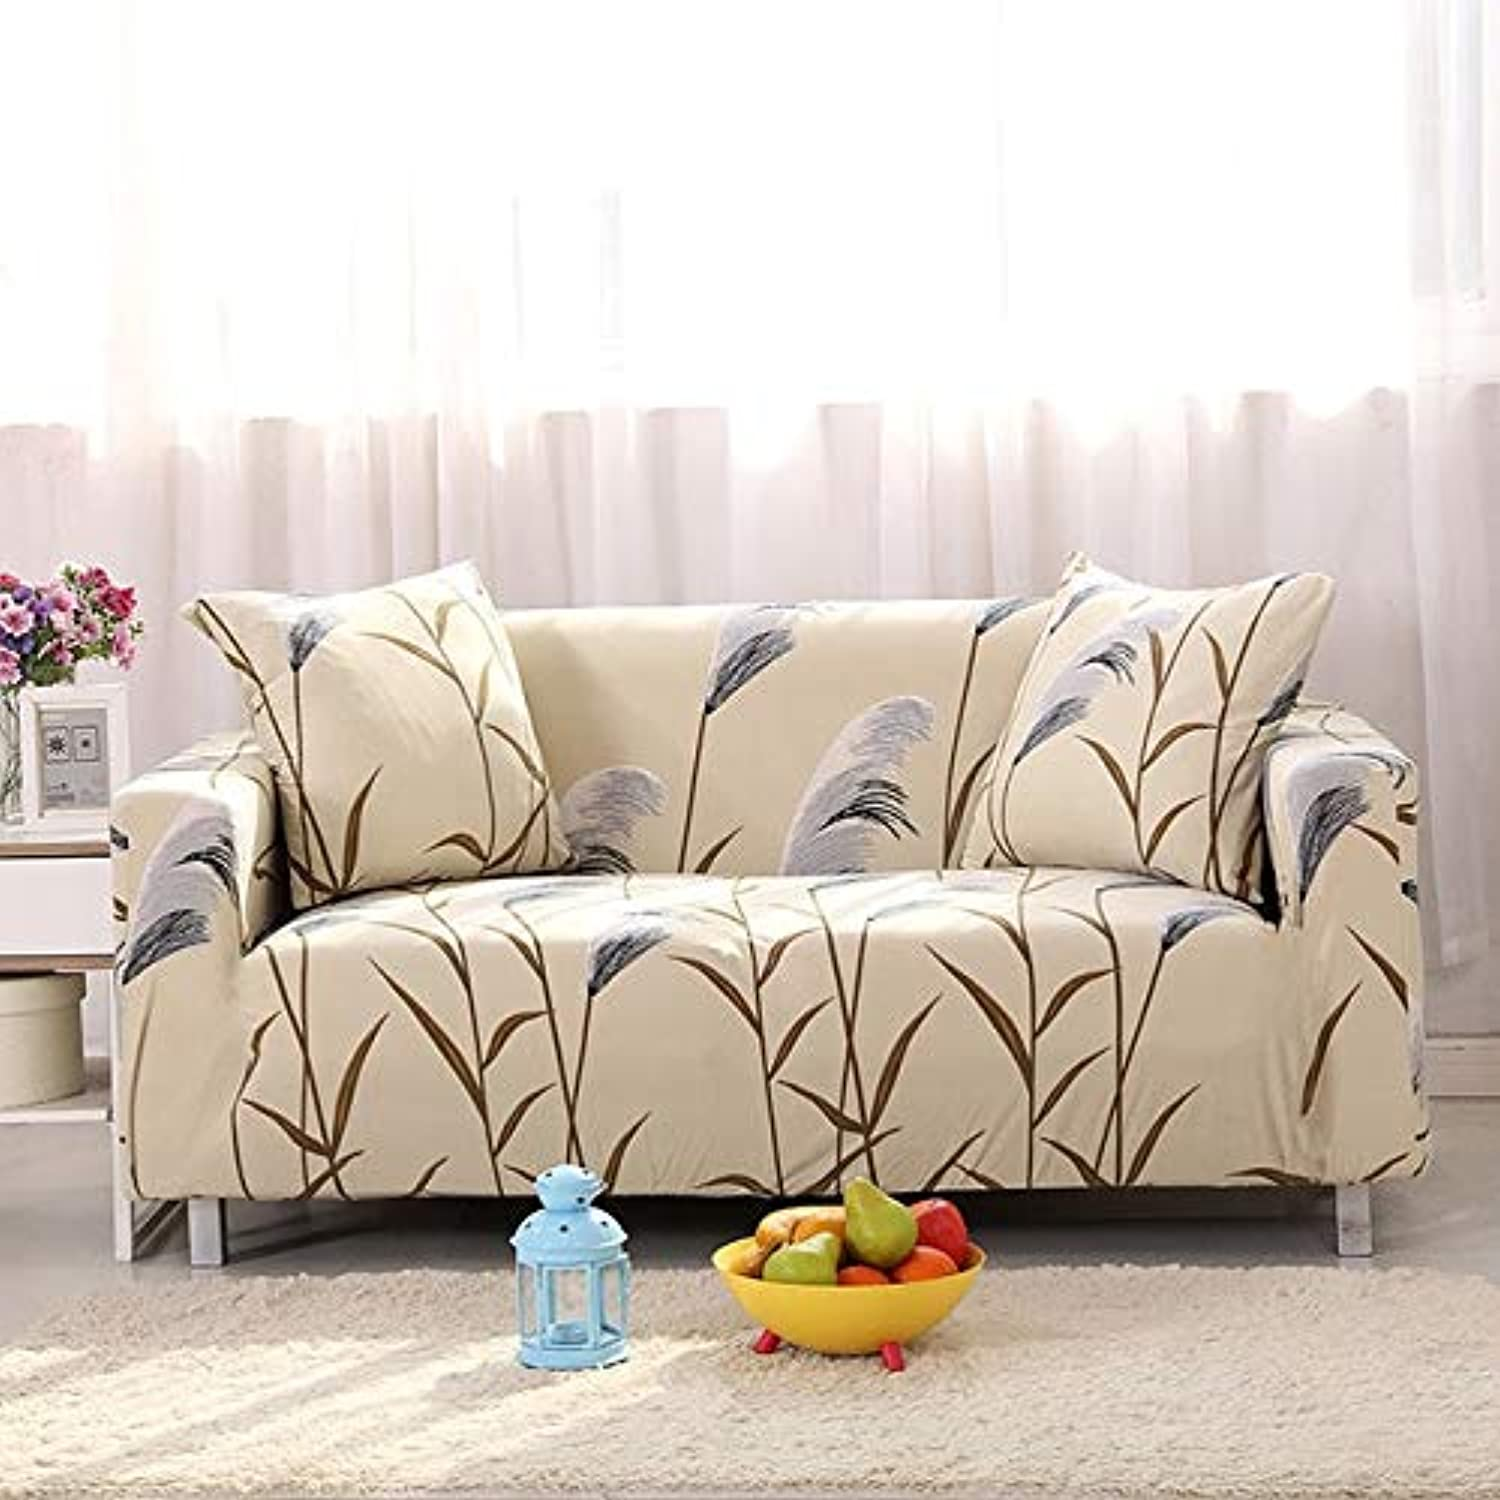 Floral Printing Stretch Elastic Sofa Cover Cotton Sofa Towel Slip-Resistant Sofa Covers for Living Room   colour14, 2-Seater 145-185cm